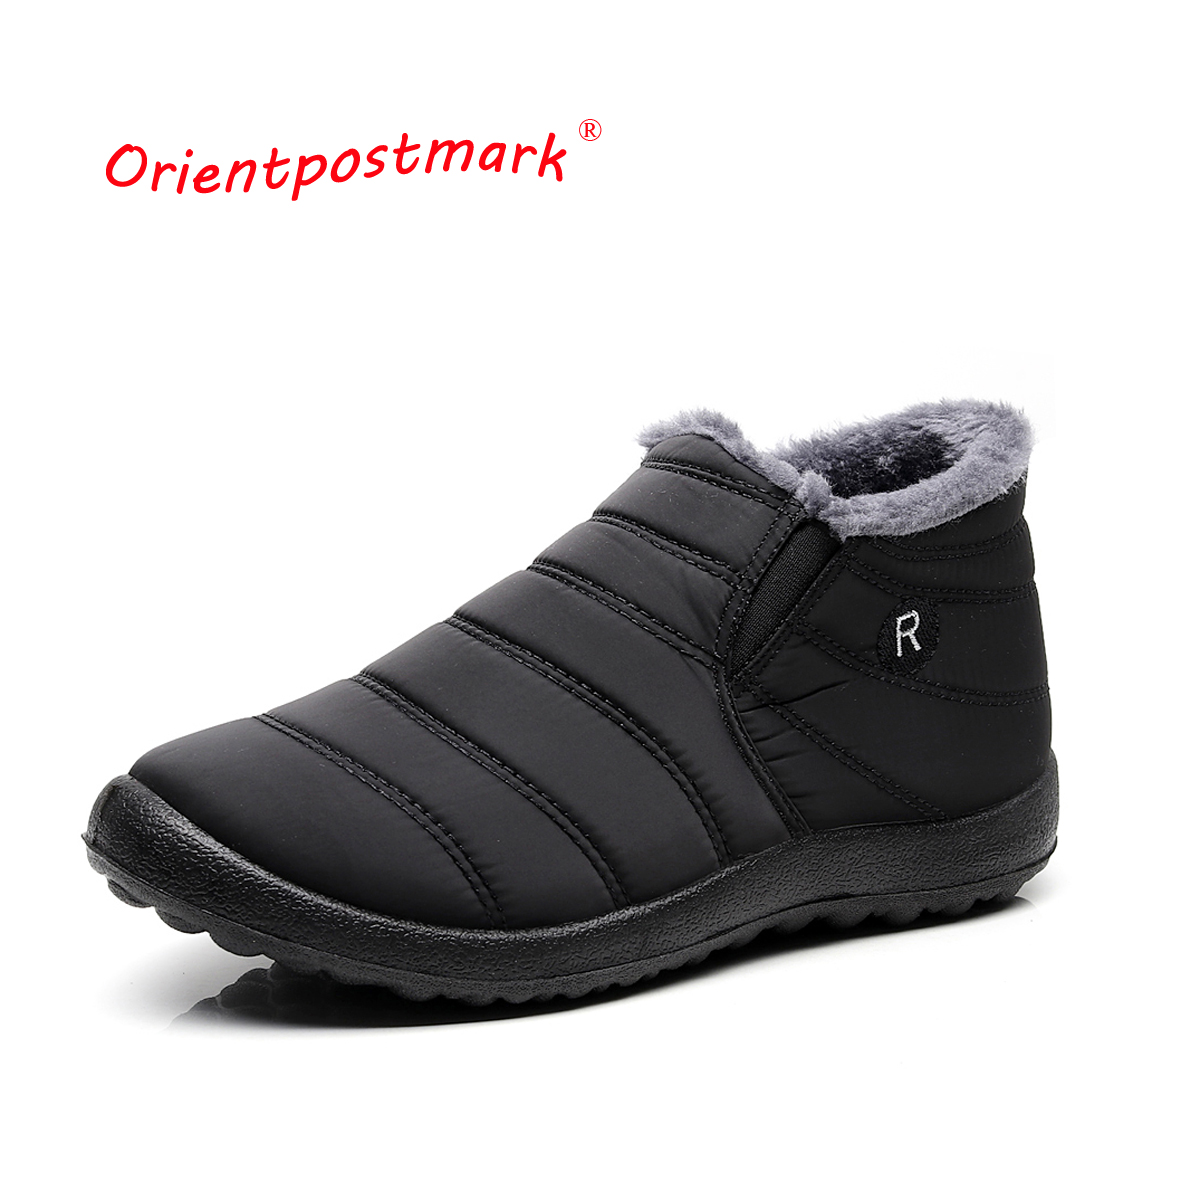 Winter Boots Ankle Boots Unisex Couples Snow Boots Solid Color Men Plush Inside Anti Skid Bottom Ankle Boot Waterproof Ski Shoes